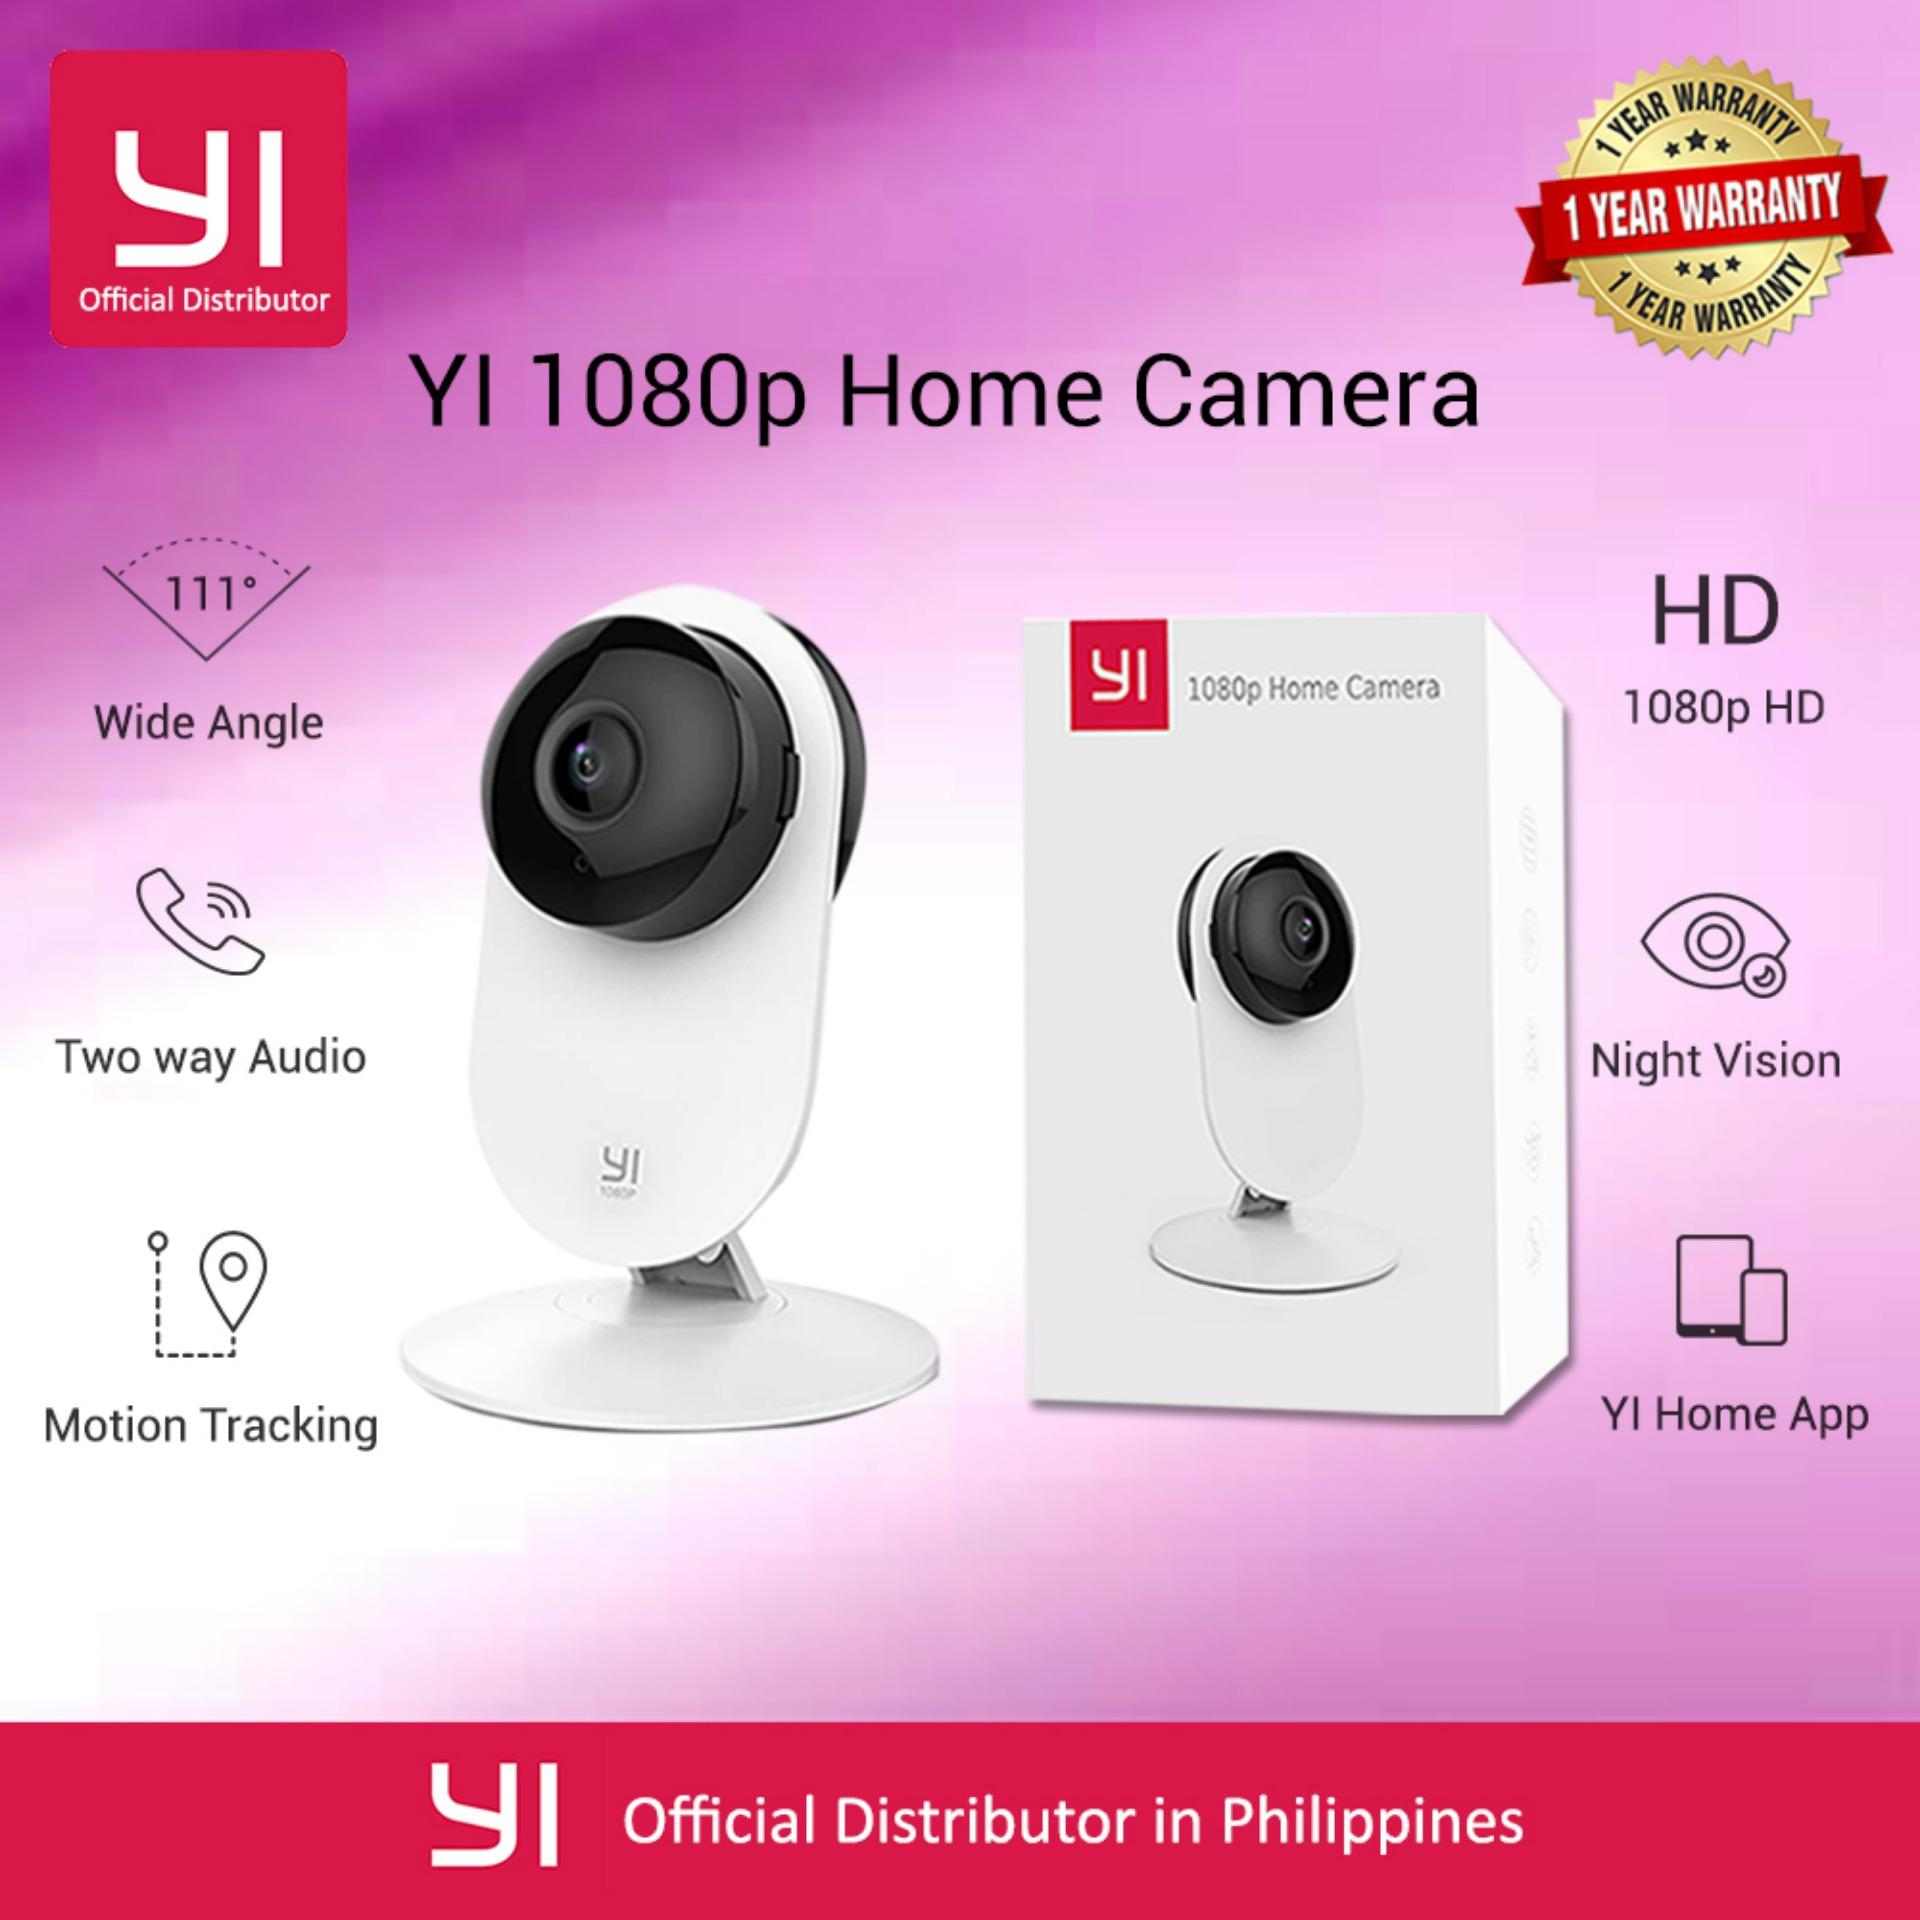 Ip Camera For Sale Security Prices Brands Specs In Kamera Xiao Fang Xiaomi 1080p Cam Cctv Yi Home Monitor Wireless Surveillance System Cloud Available